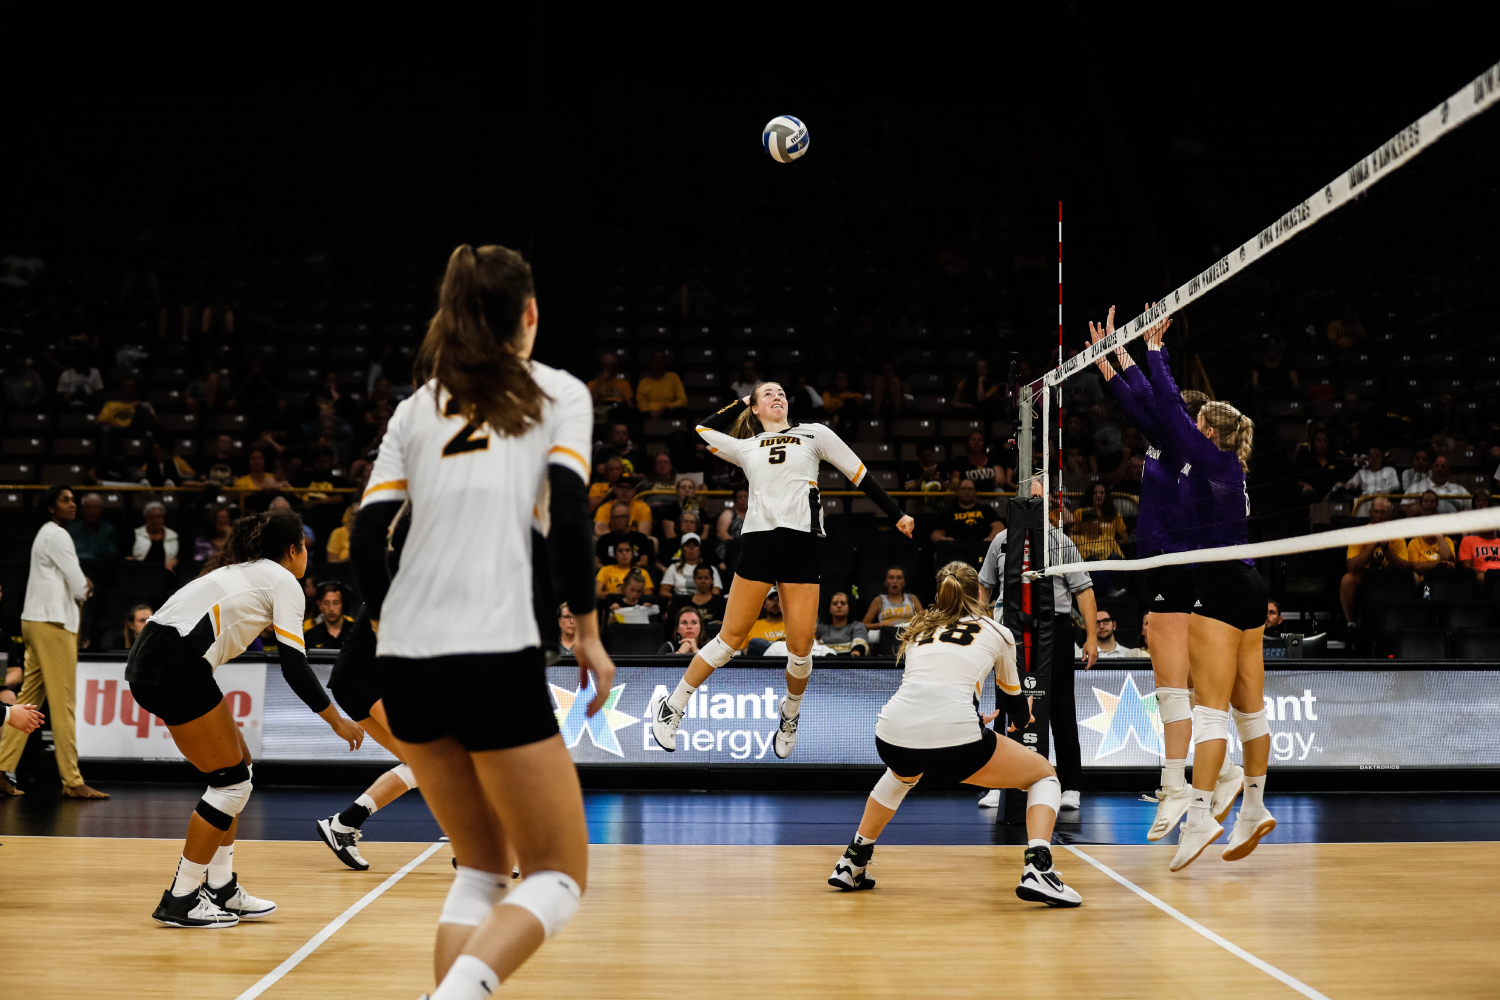 Iowa outside hitter Meghan Buzzerio goes for a kill during a volleyball match between Iowa and Washington at Carver Hawkeye Arena on Saturday, September 7, 2019. The Hawkeyes were defeated by the Huskies, 3-1.